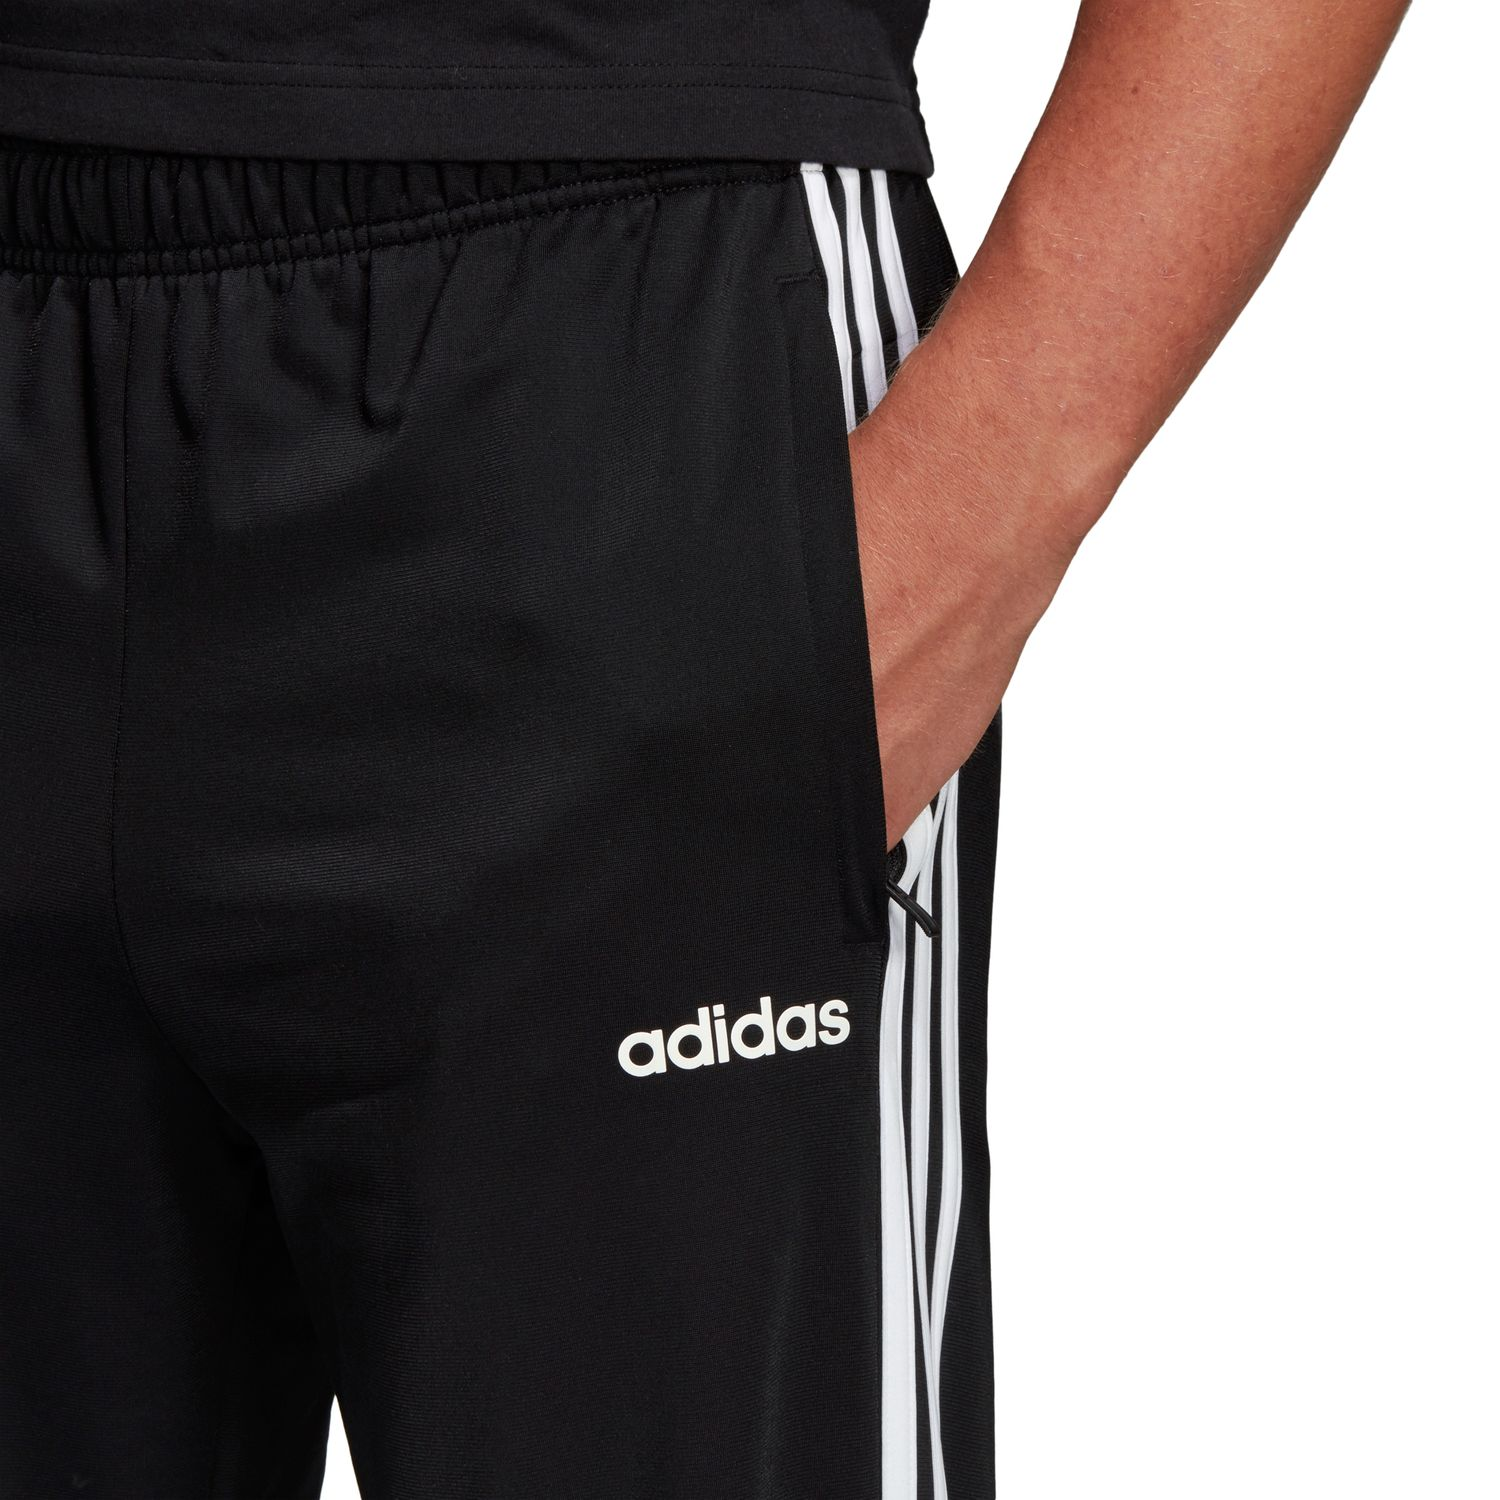 adidas Essentials 3-Streifen Tapered Herren Trainingshose – Bild 4